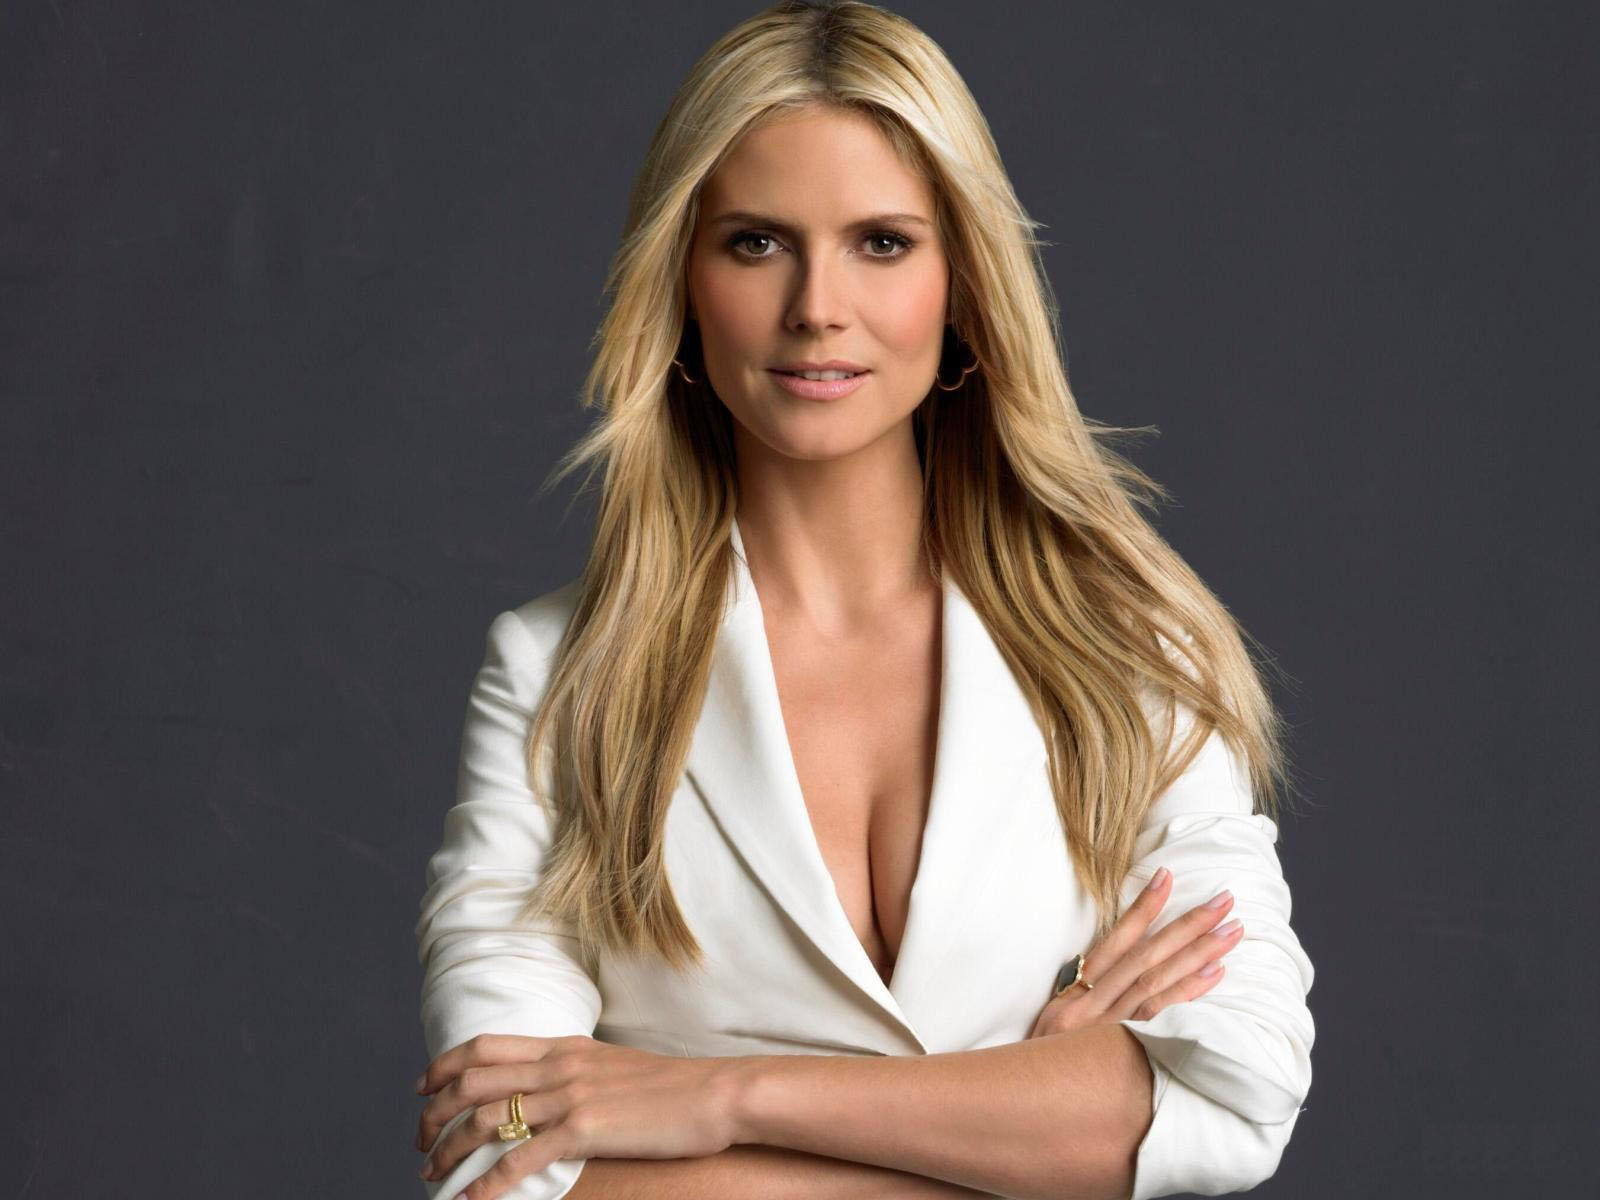 SEXIEST MODEL IN THE WORLD: HEIDI KLUM